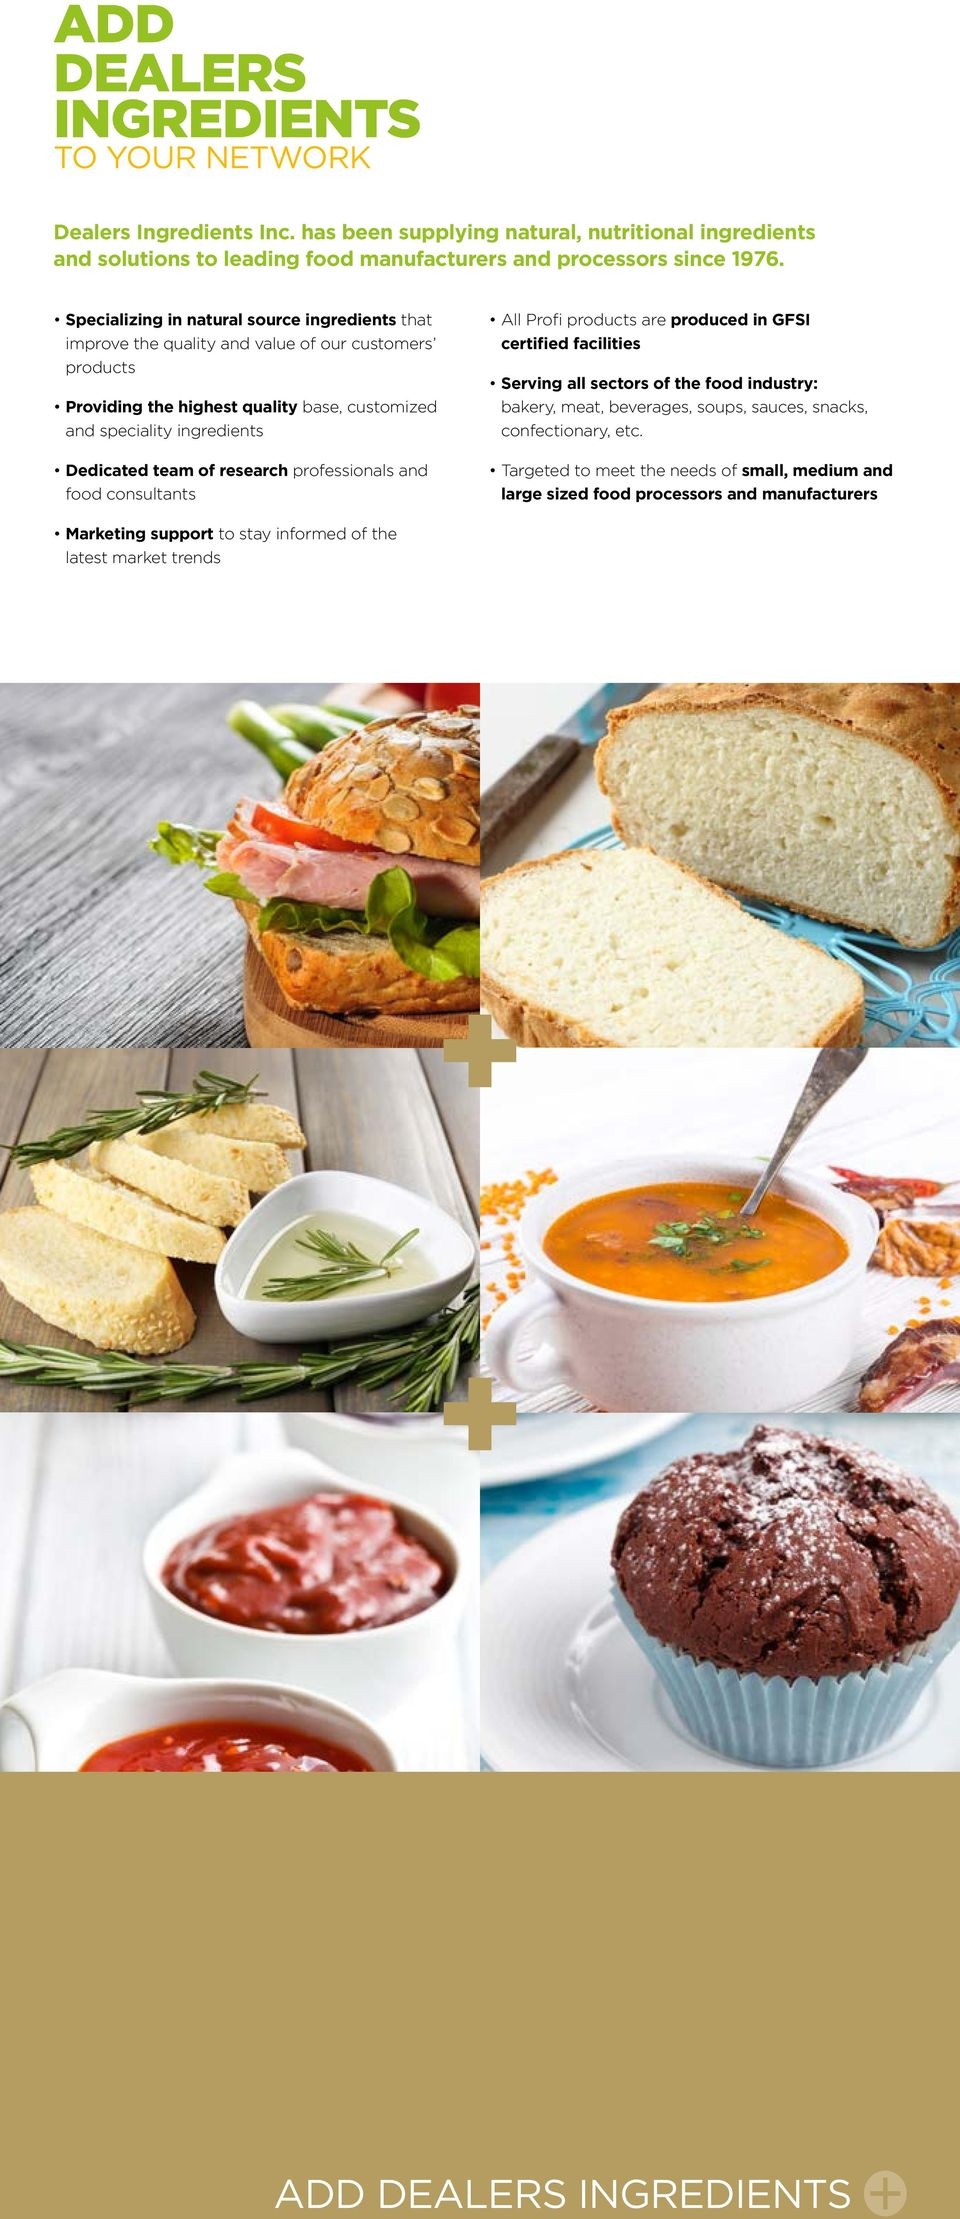 of research professionals and food consultants All Profi products are produced in GFSI certified facilities Serving all sectors of the food industry: bakery, meat, beverages, soups, sauces,